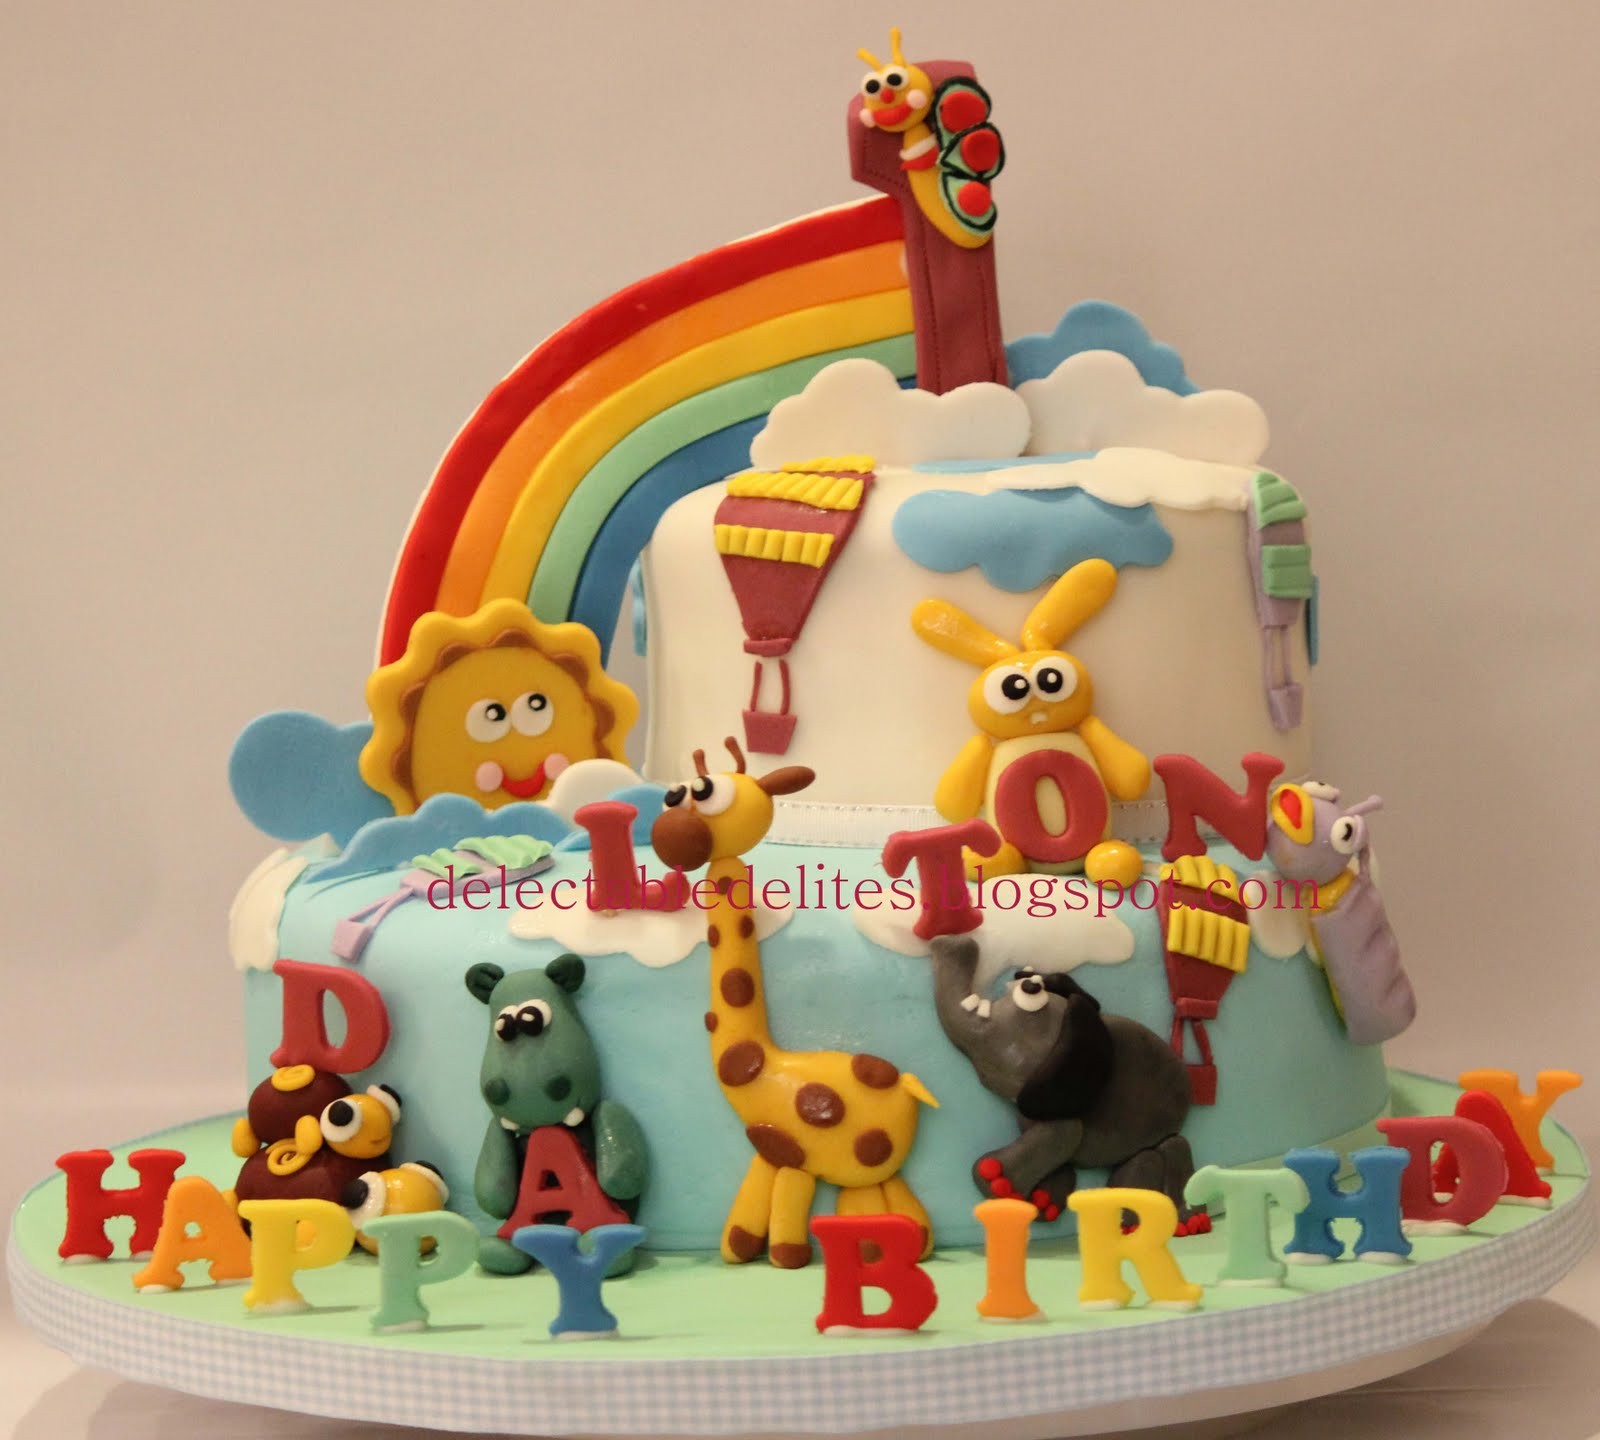 Delectable Delites Baby TV theme cake for Daltons 1st birthday